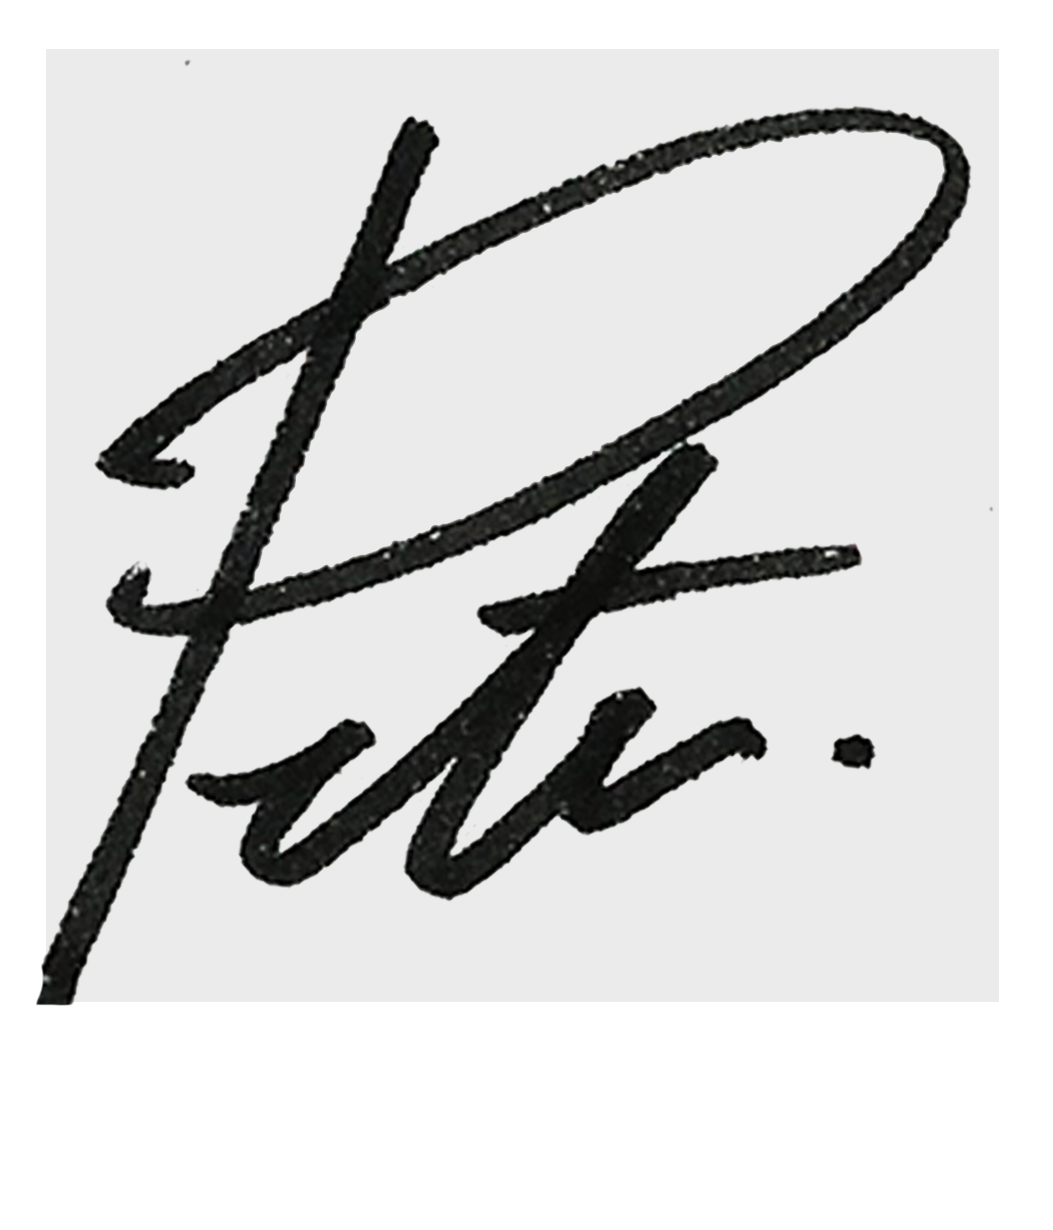 Pete Photography